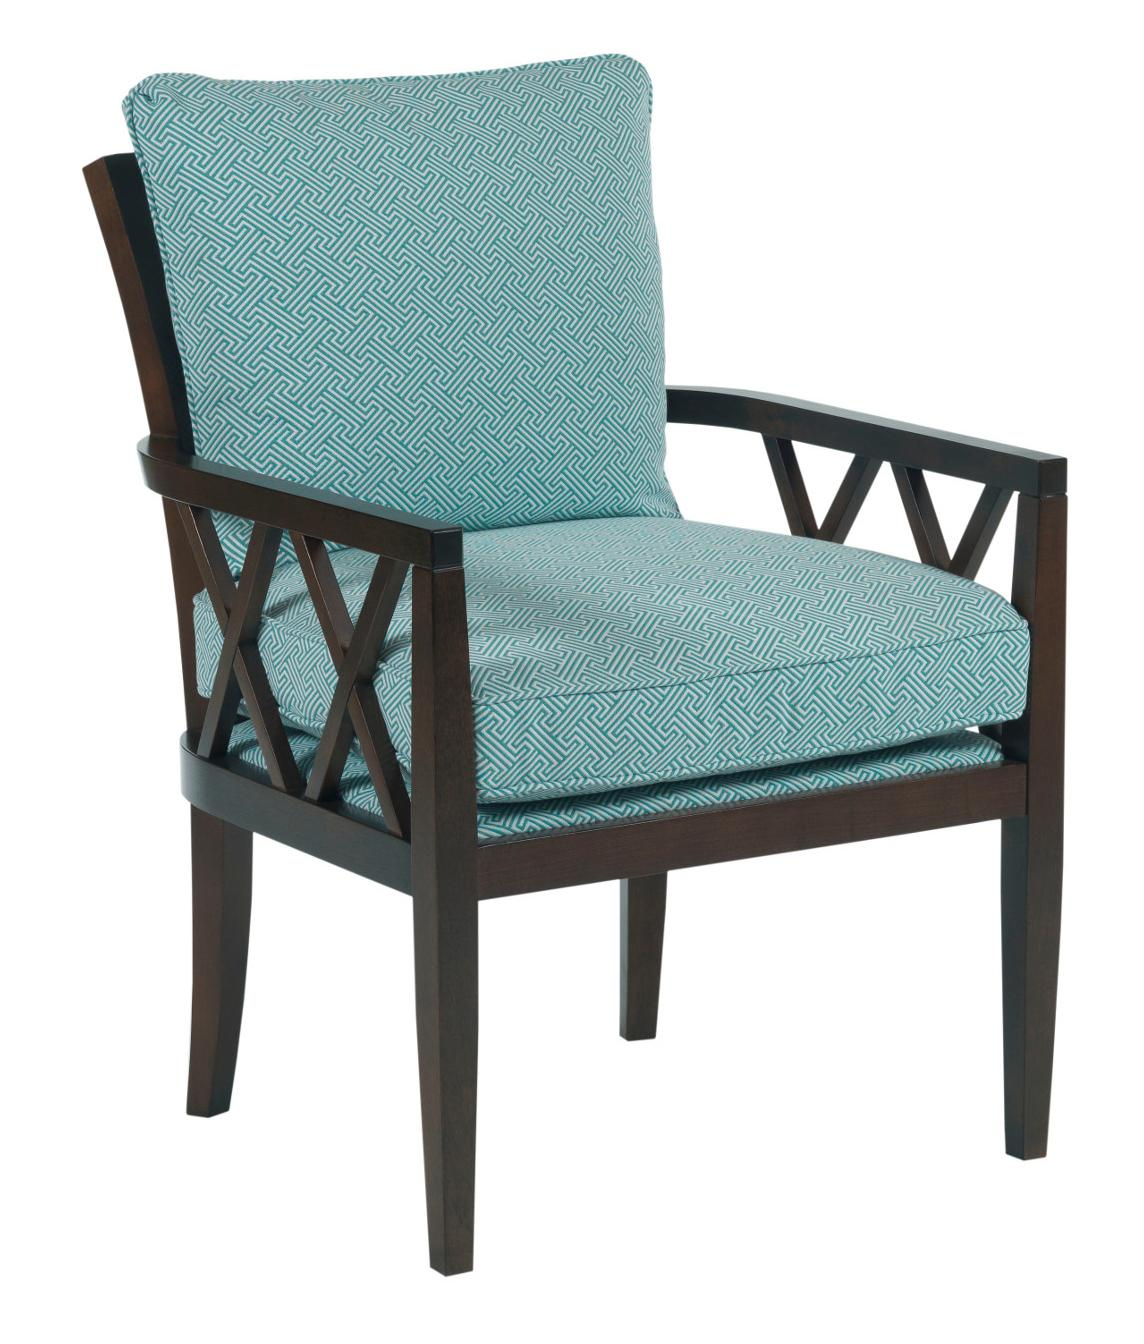 Wood Accent Chair Kincaid Furniture Accent Chairs Veranda Chair With Exposed